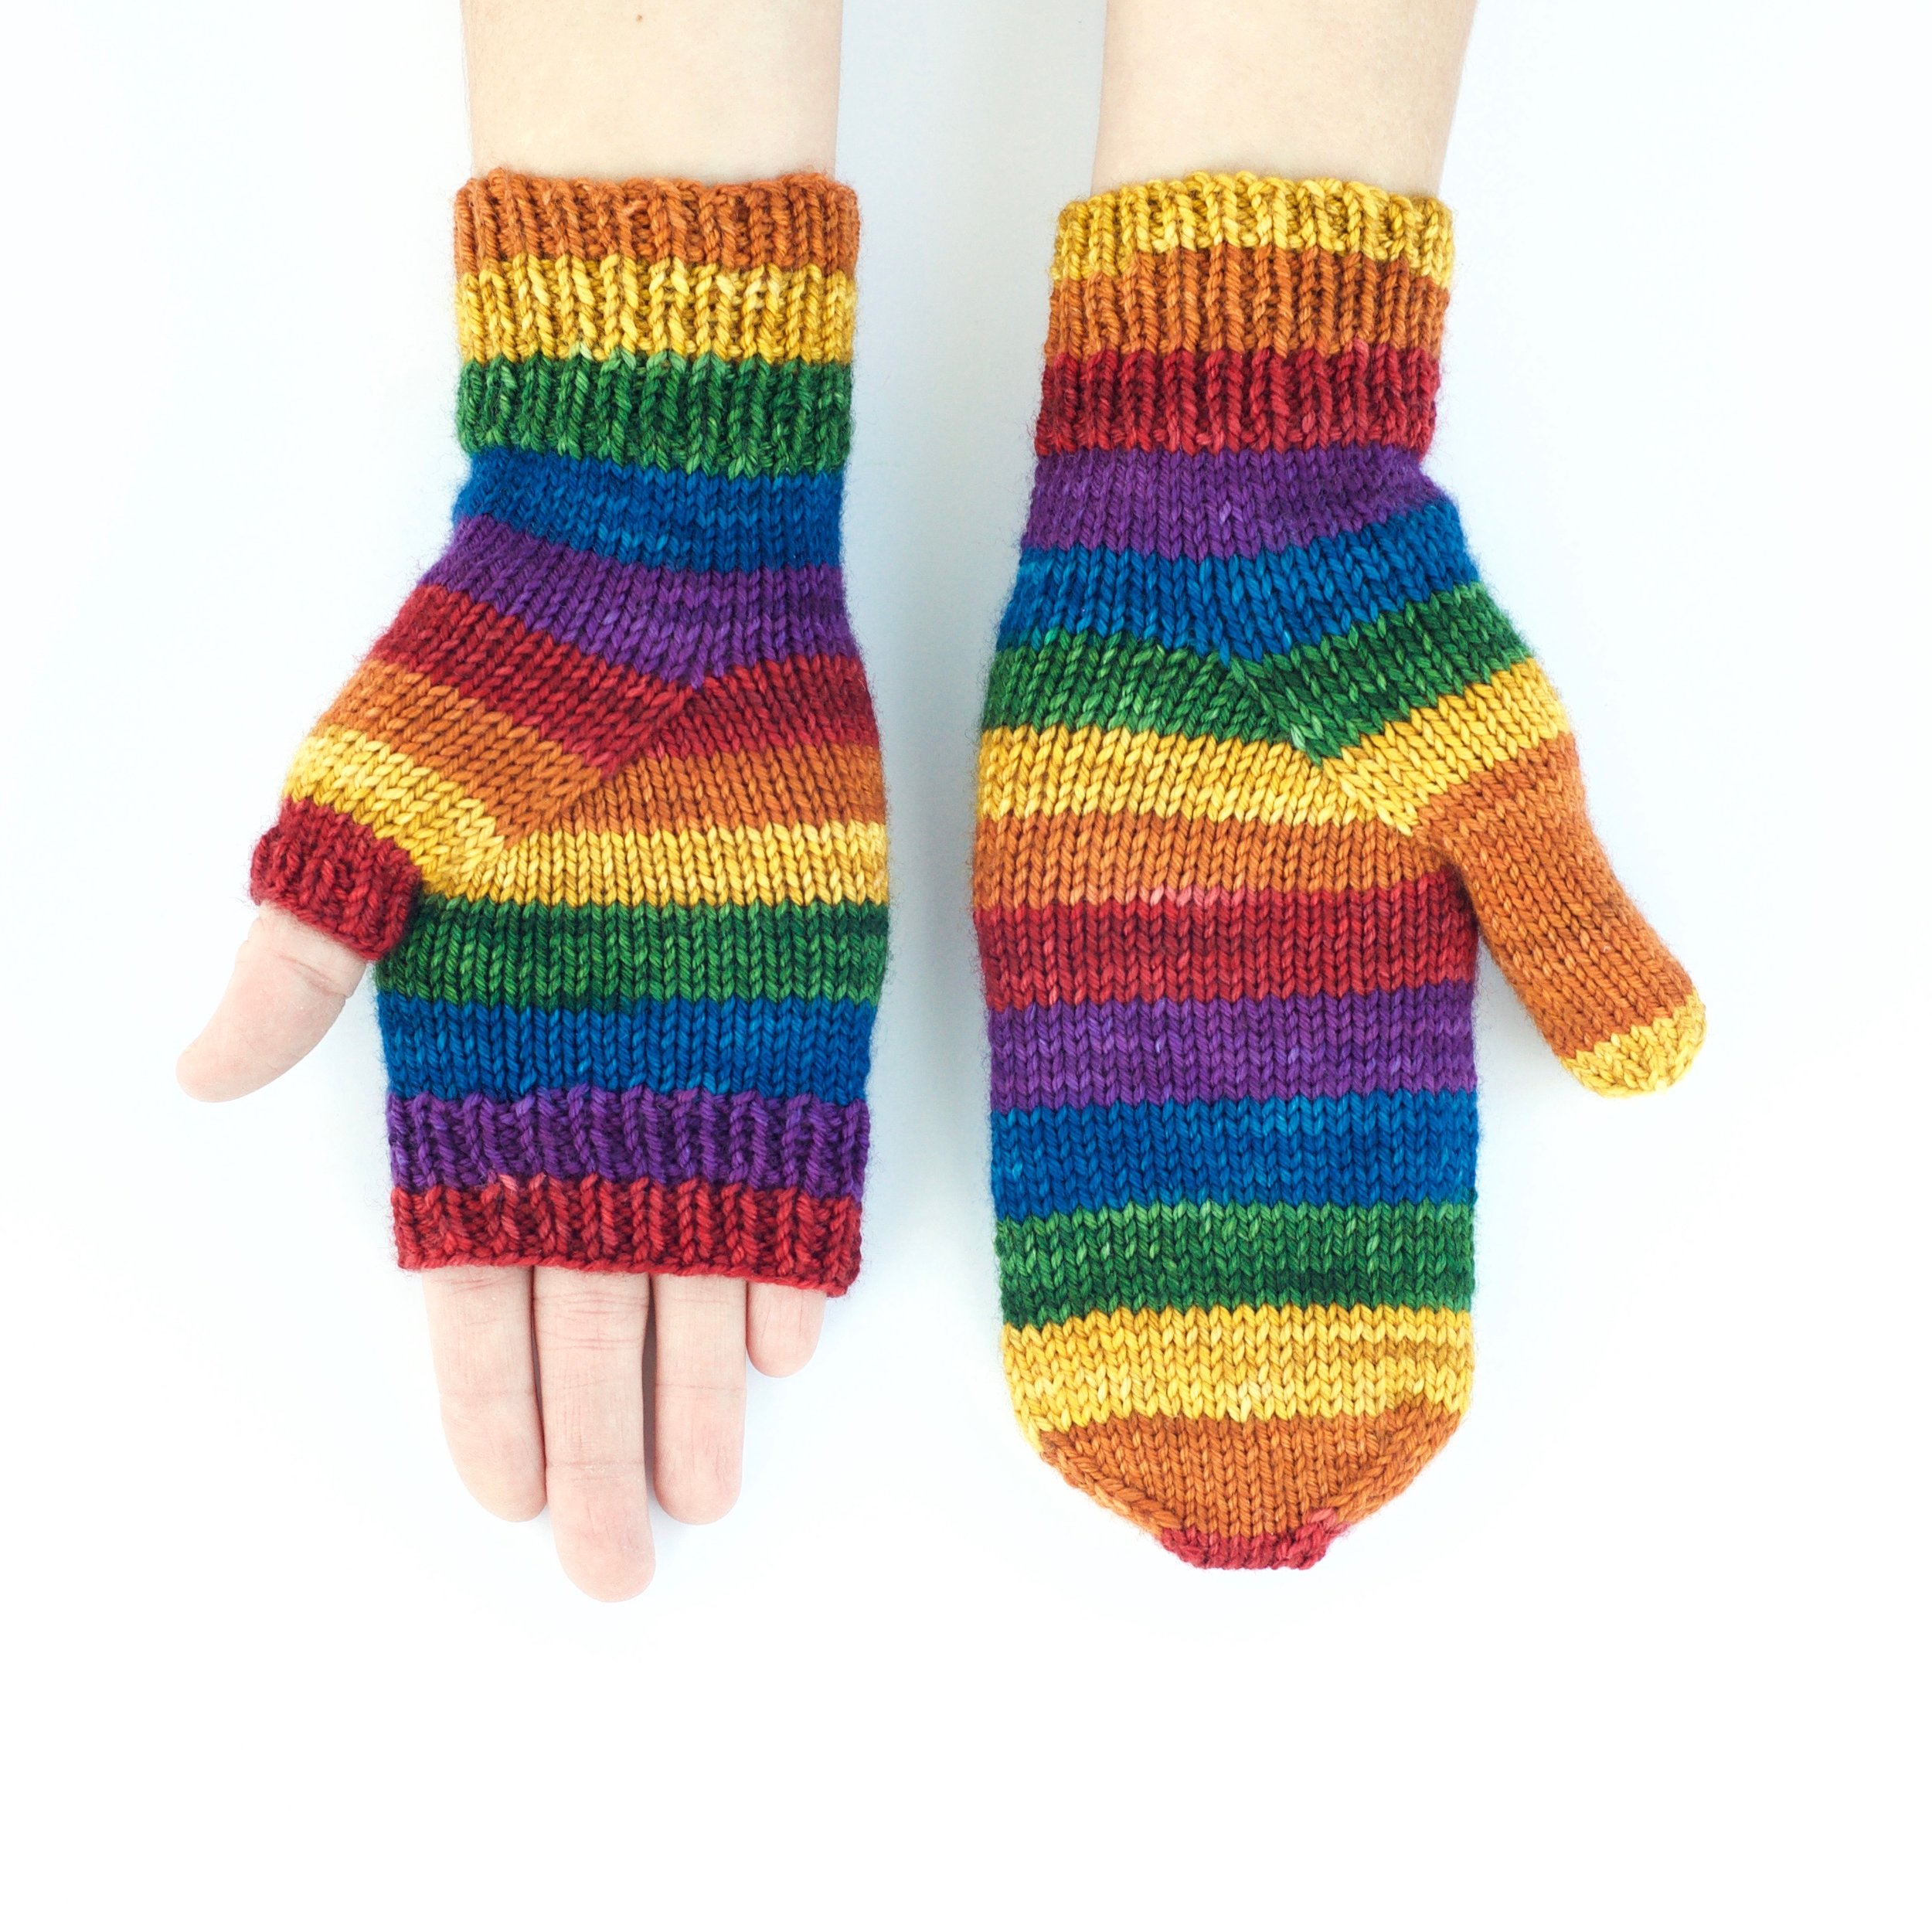 Palmistry DK Mitts